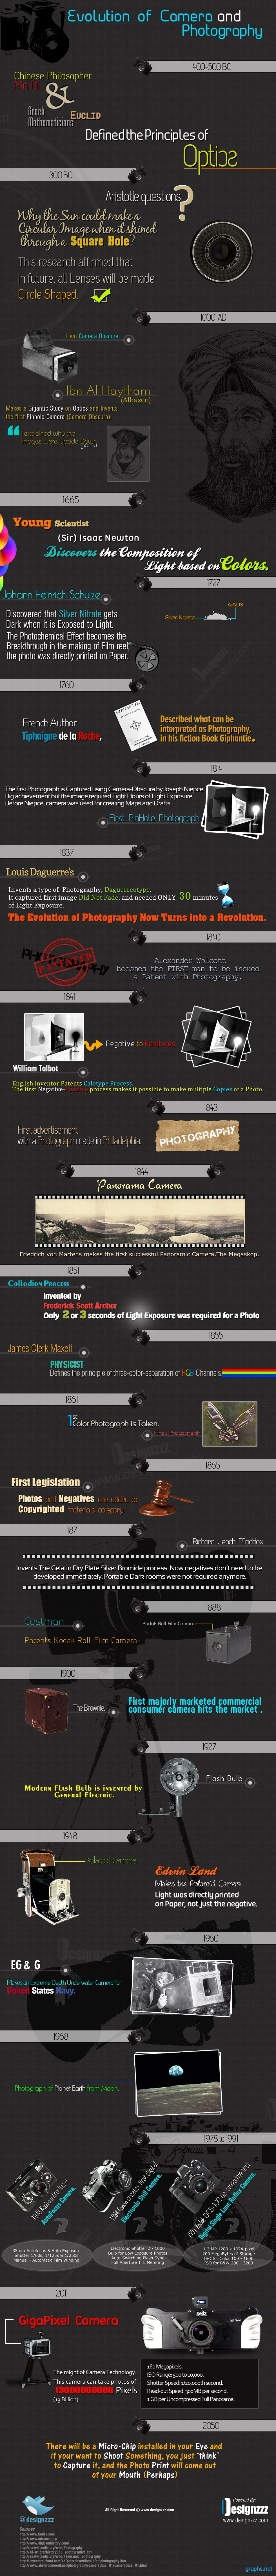 evolution of cameras timeline